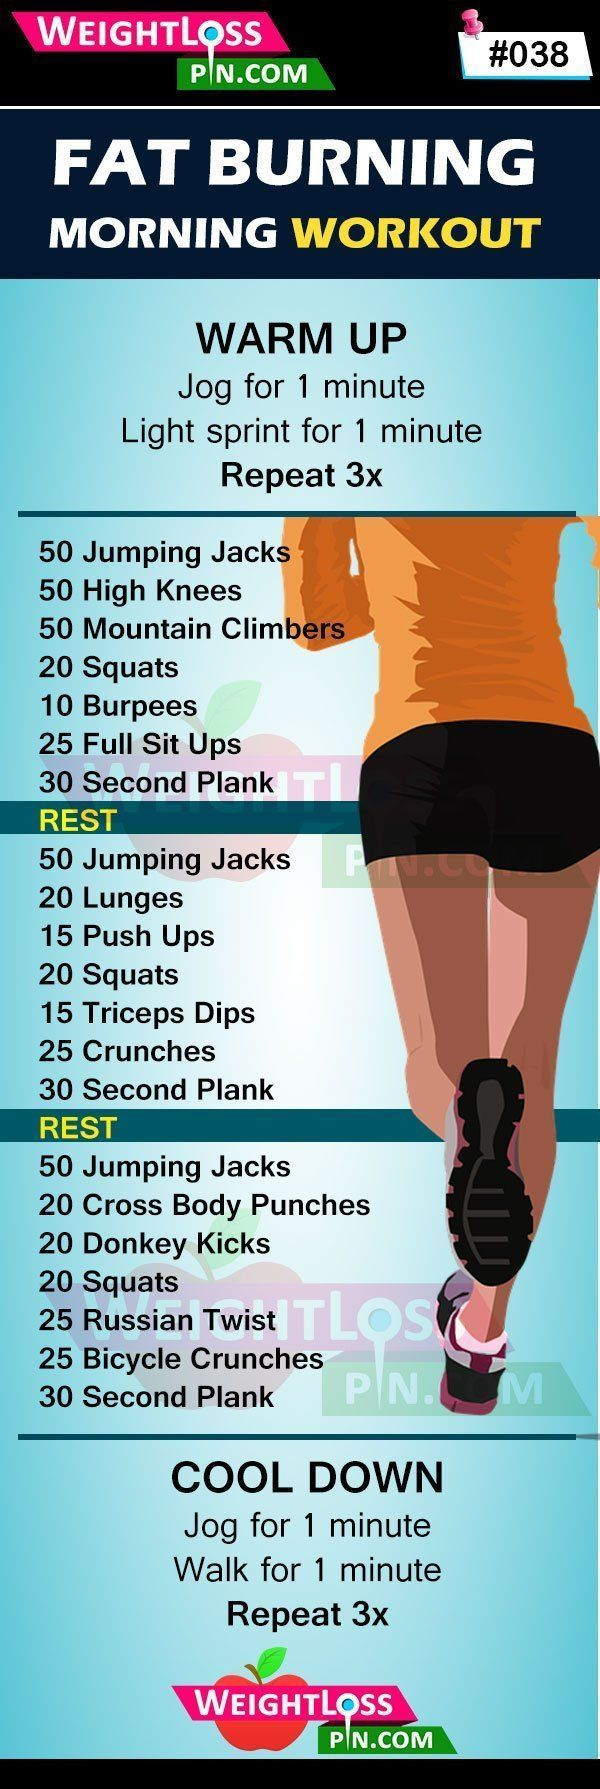 #body #Challenges #fitness body #Home #Total #Workouts No gym No e #Body #Challenges #Fitness #GYM #...